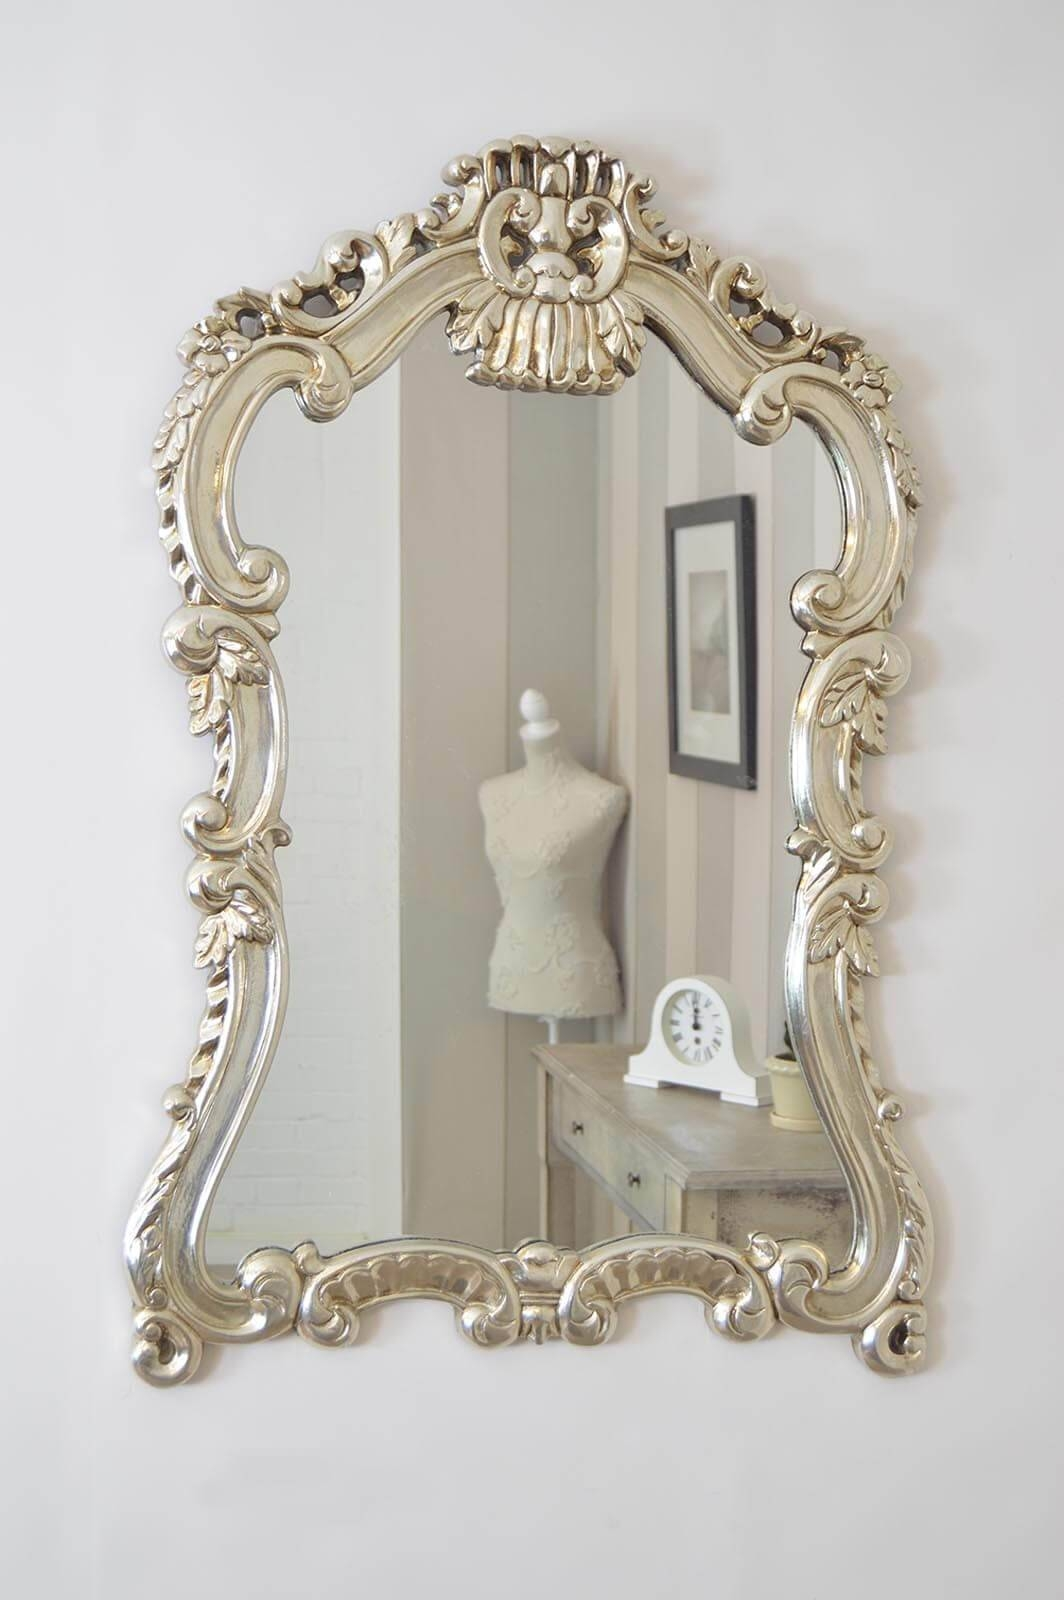 Decorative Ornate Mirrors : Wall Vs Floor, Which One Better Intended For Silver Ornate Wall Mirrors (View 9 of 25)